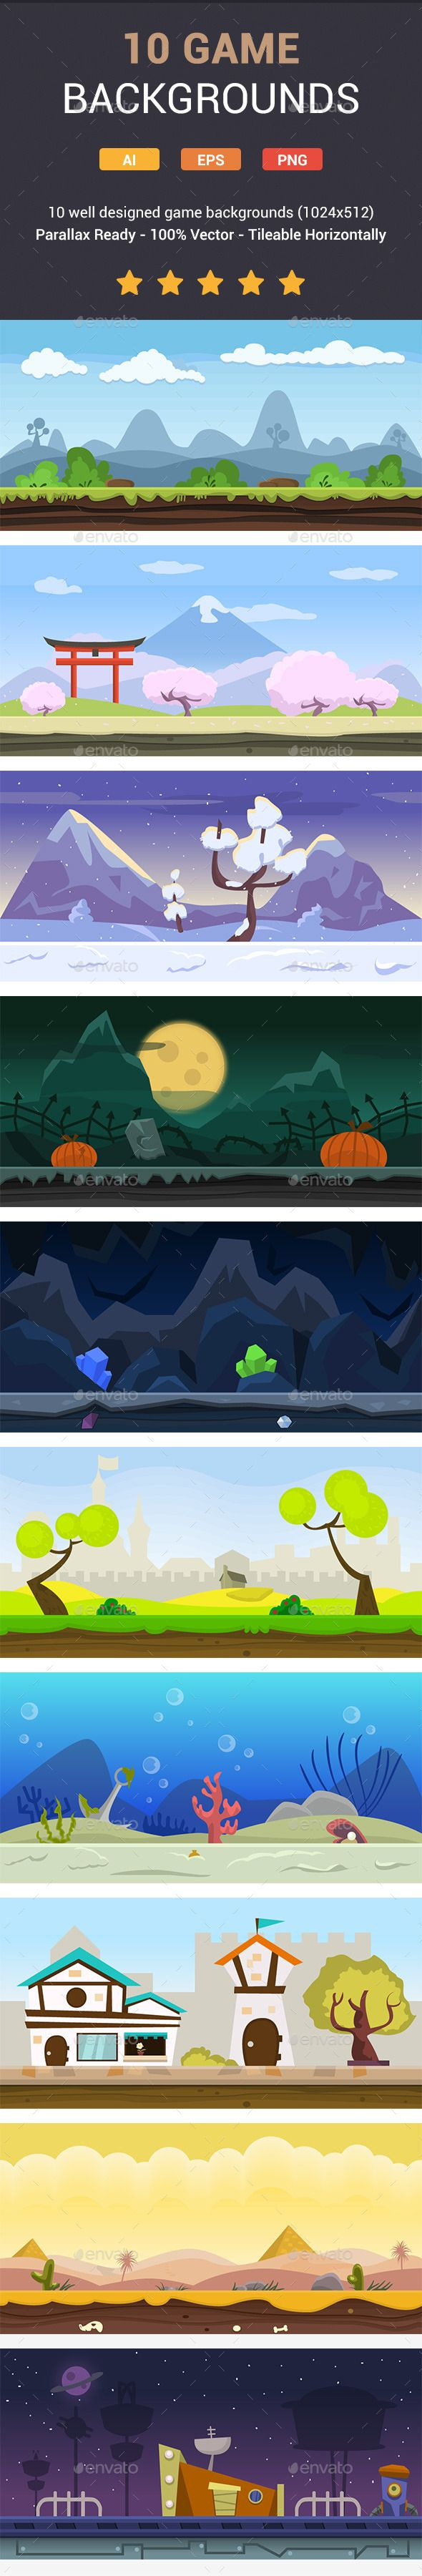 10 Fresh Game Backgrounds - Backgrounds Game Assets